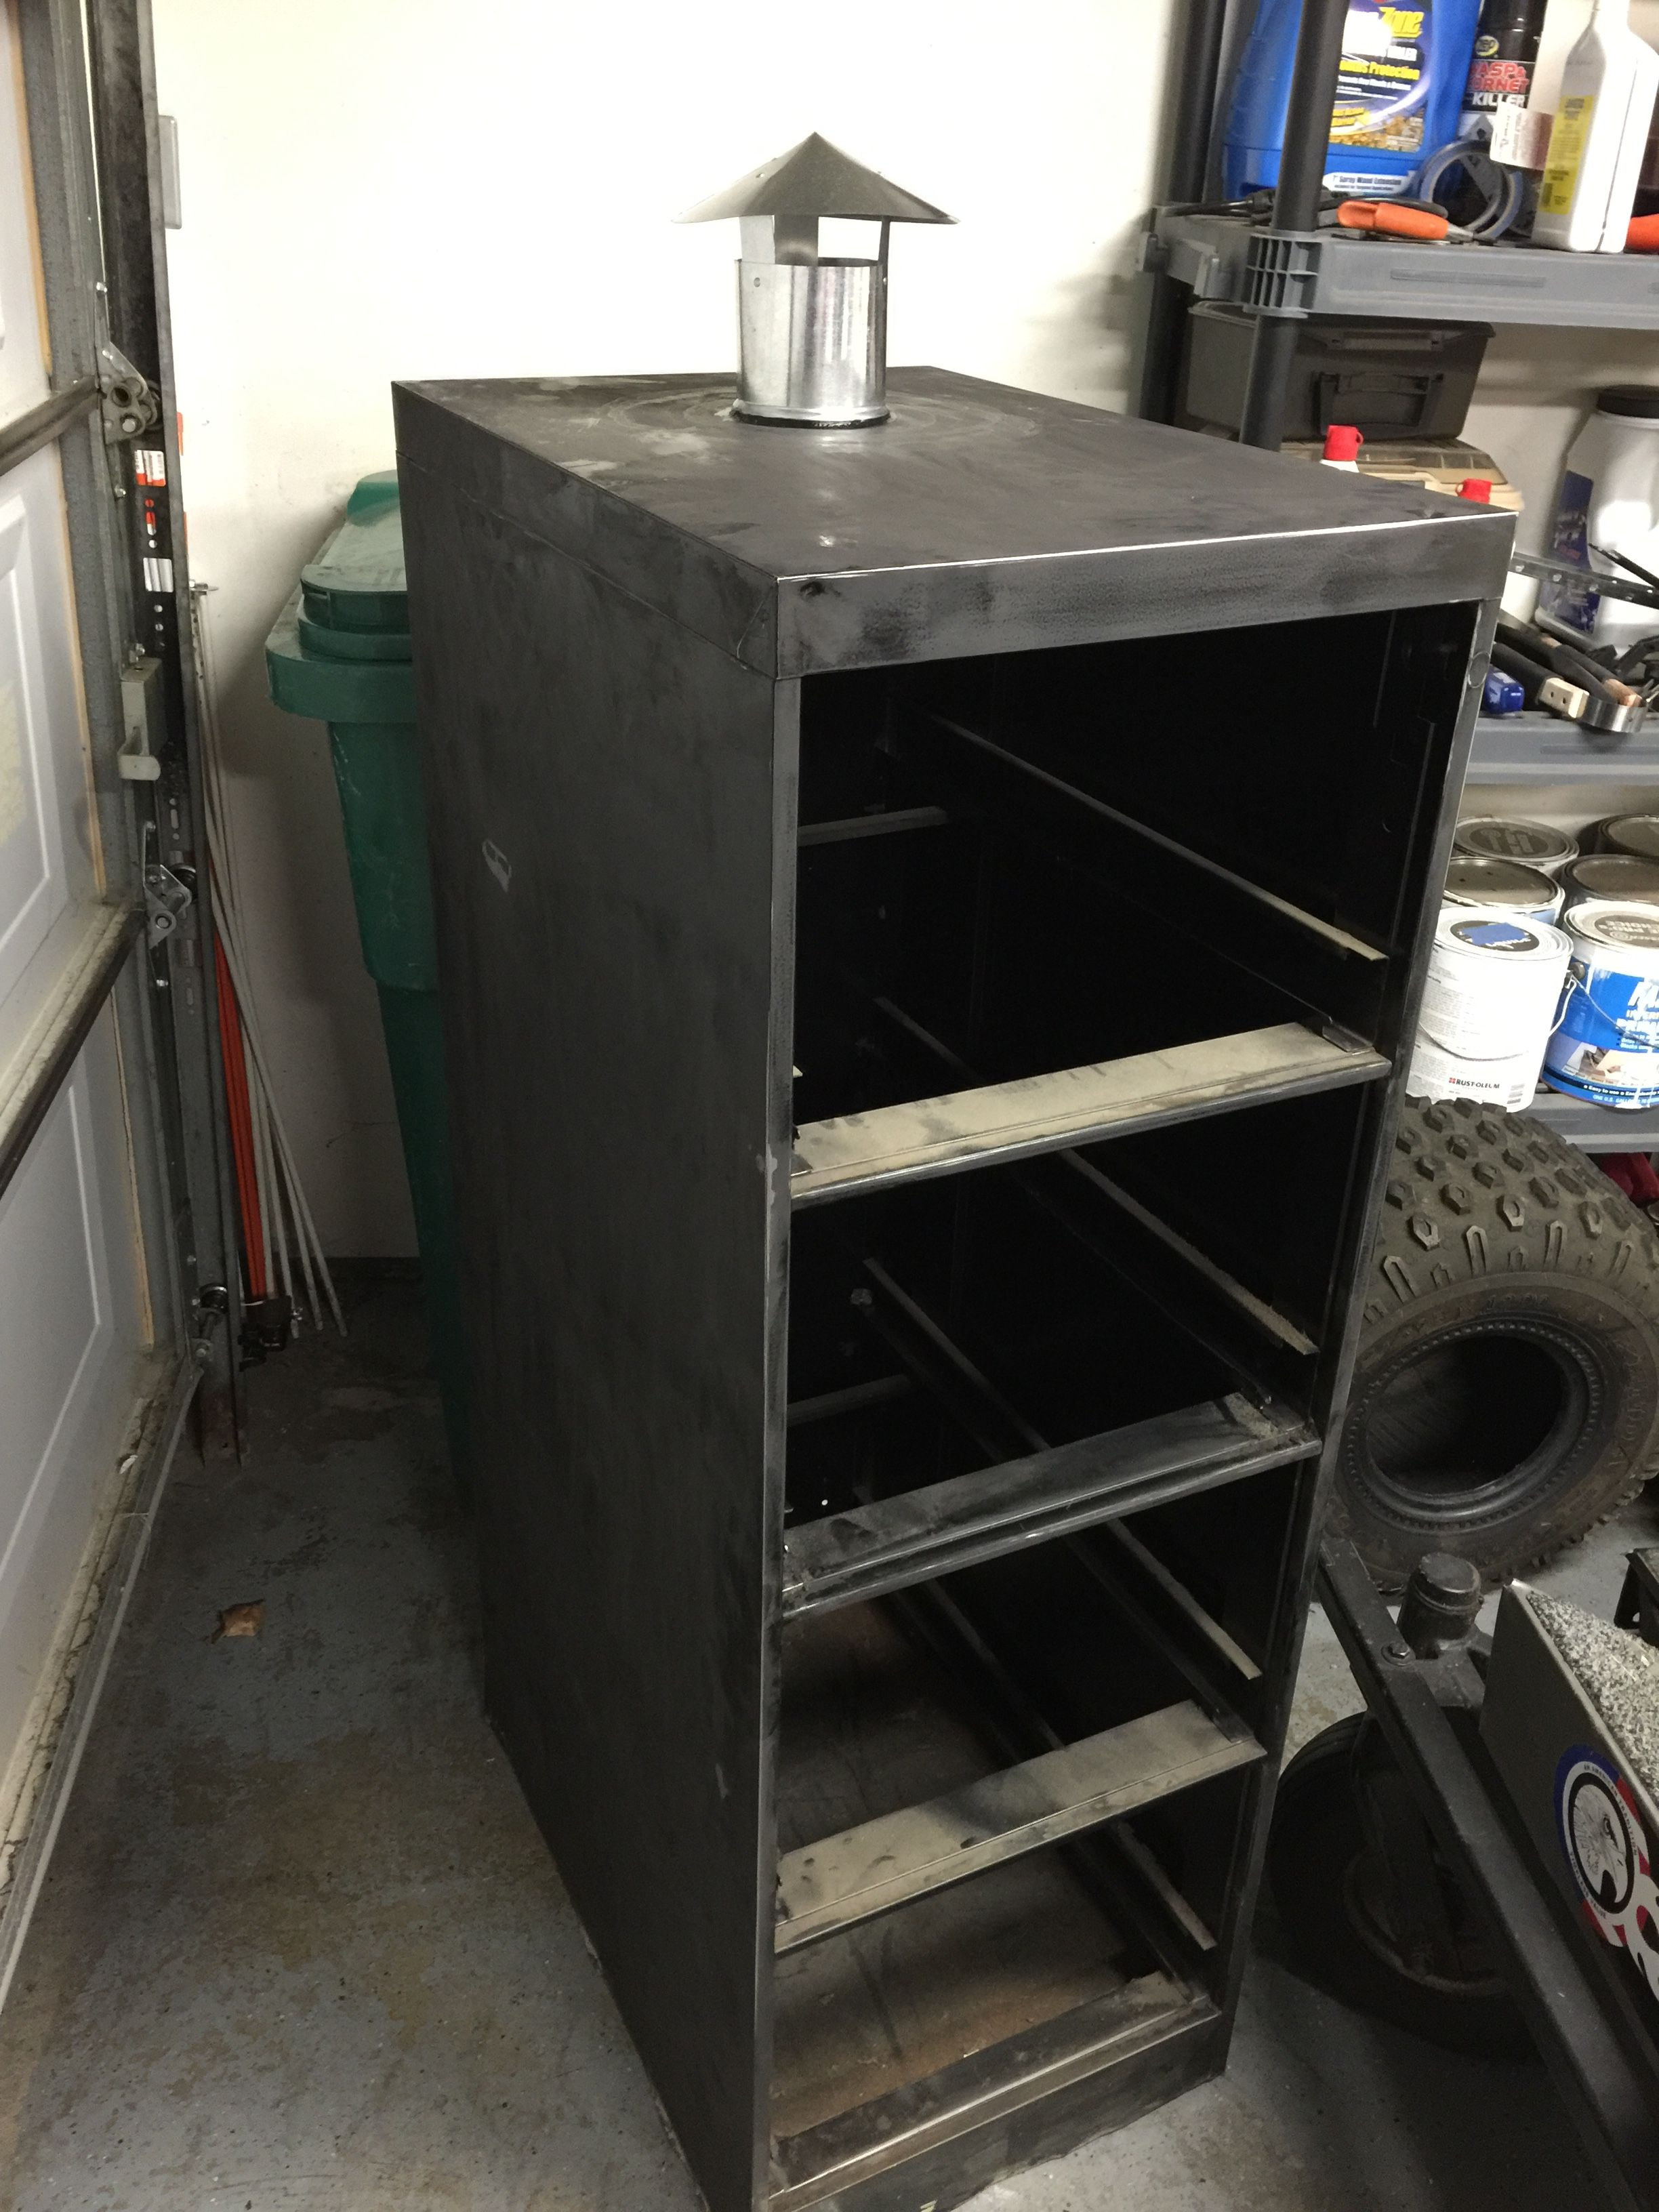 Perky Cabinets Pin By Ryan Winget On File Cabinet Pinterest File Cabinet Smoker Paint File Cabinet Smoker Black Guy